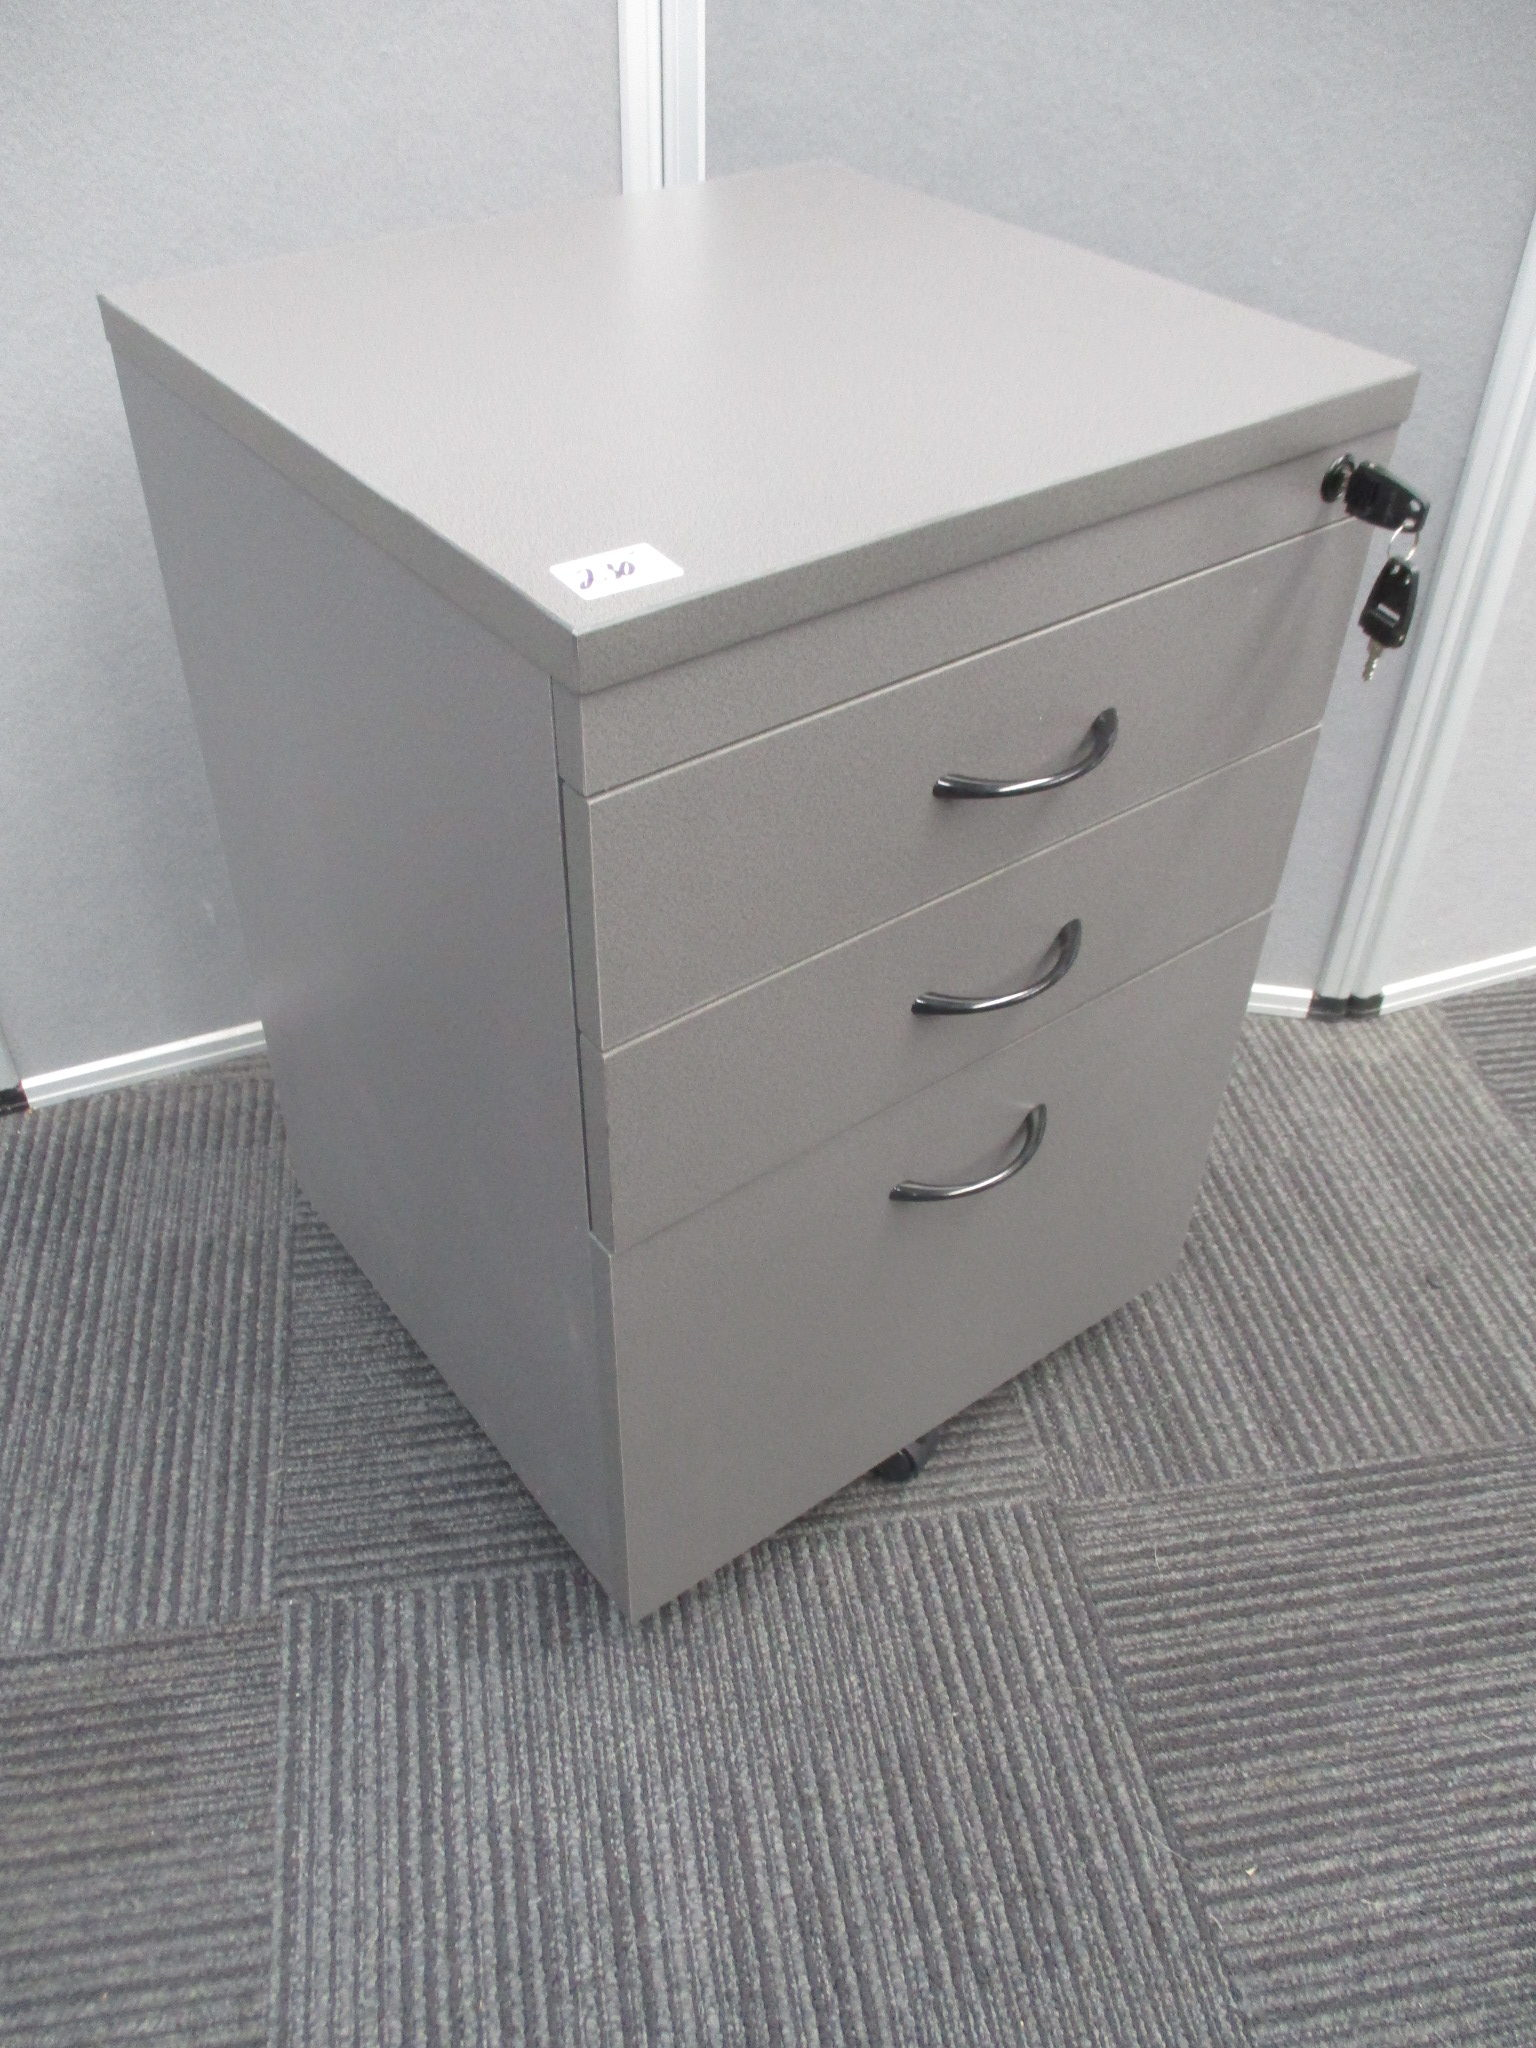 New Ironstone 3 Drawer Mobile Pedestals $230